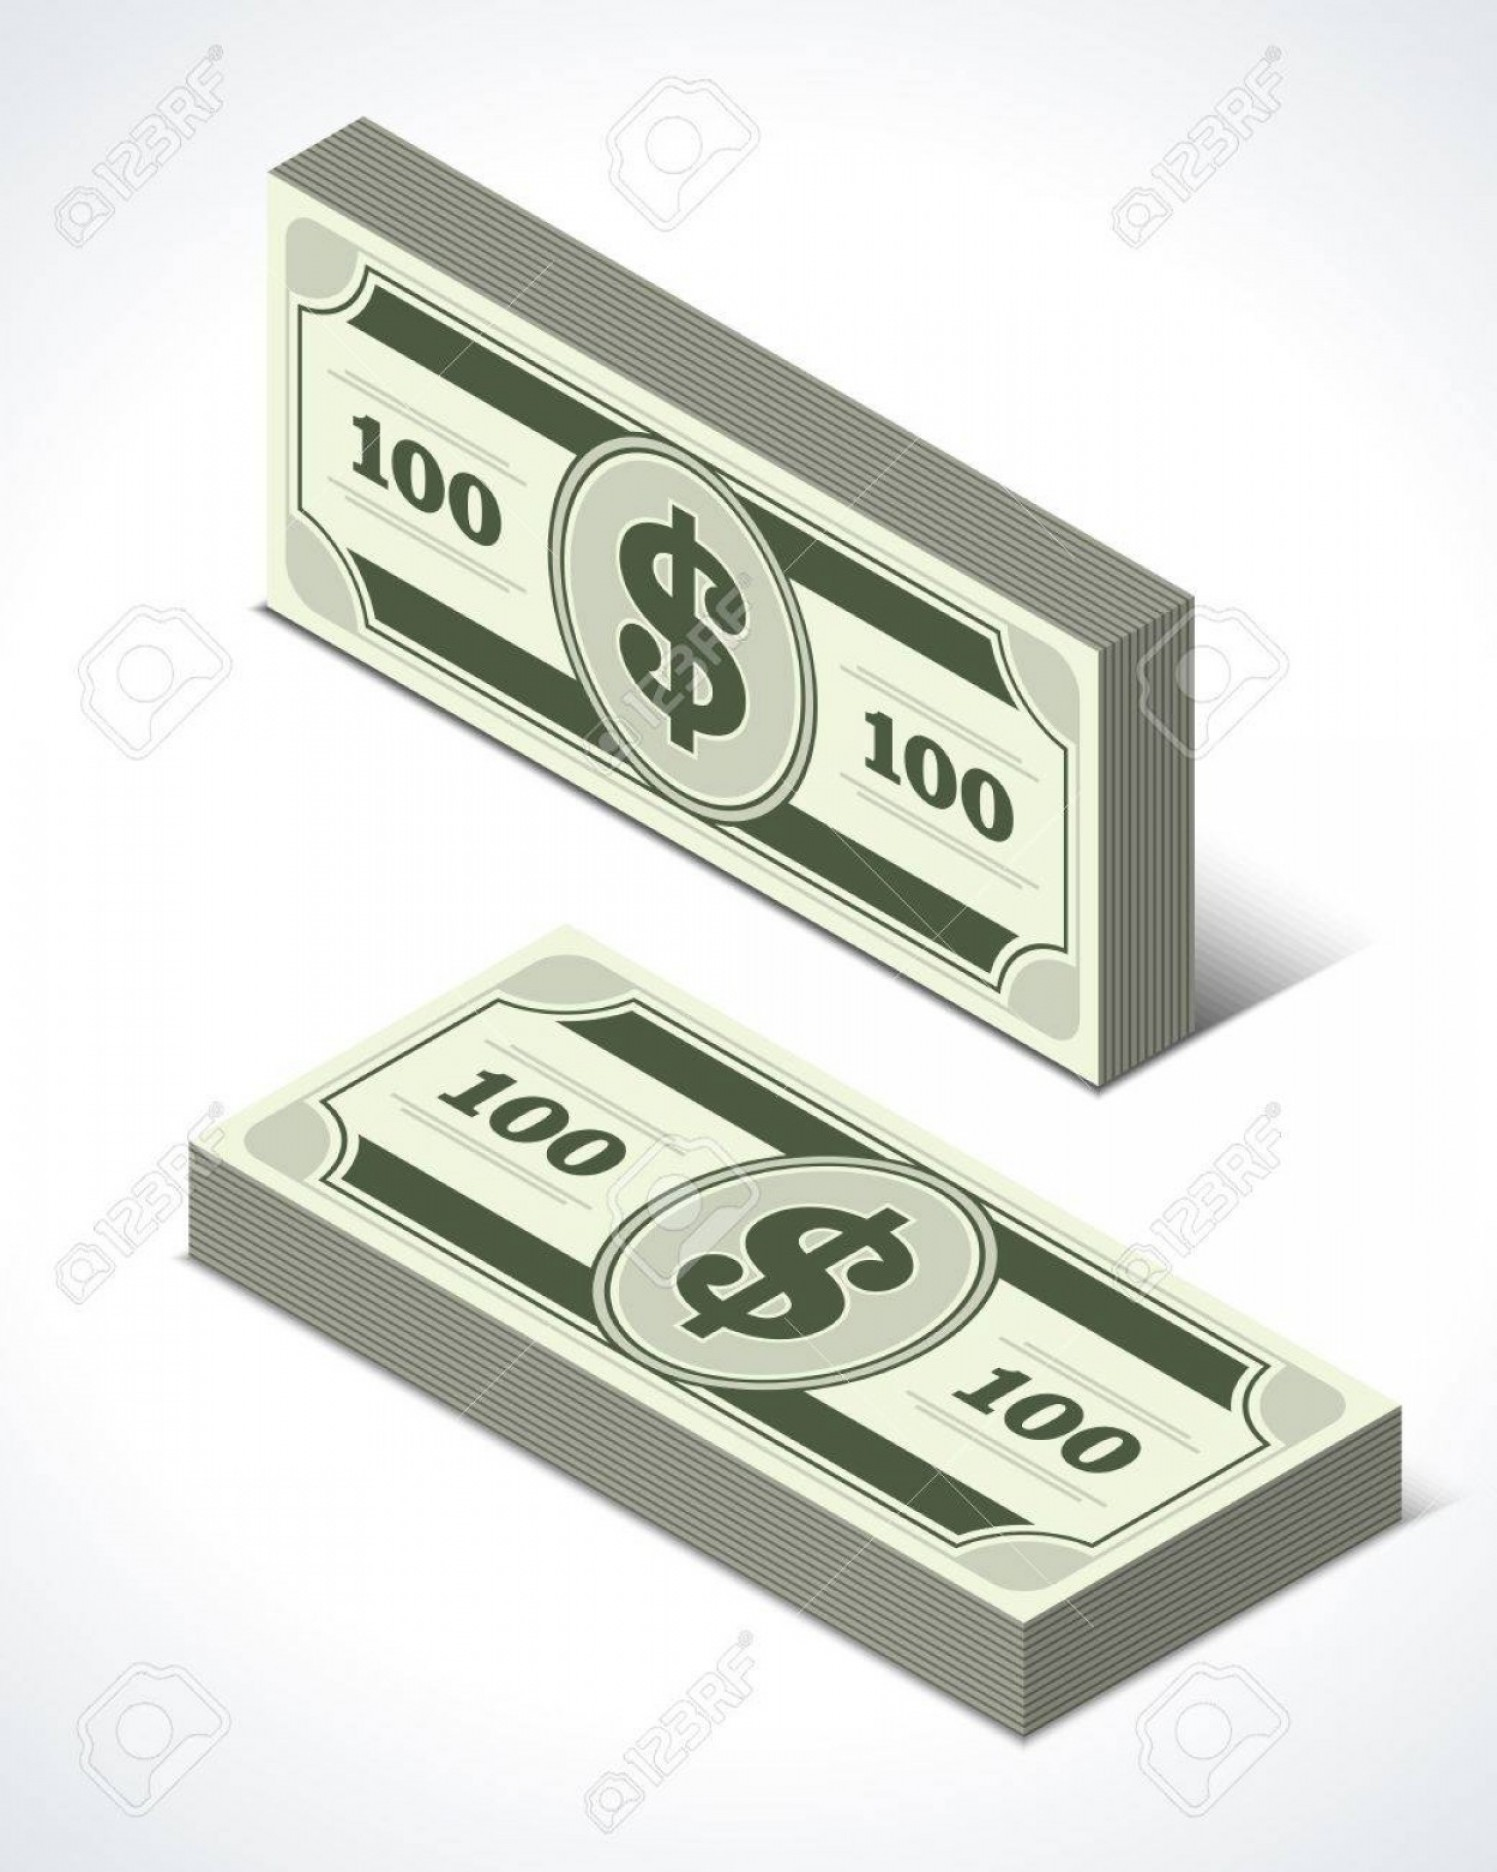 Perspective Vector: Photodollars Money Isometric Perspective Vector Design Elements